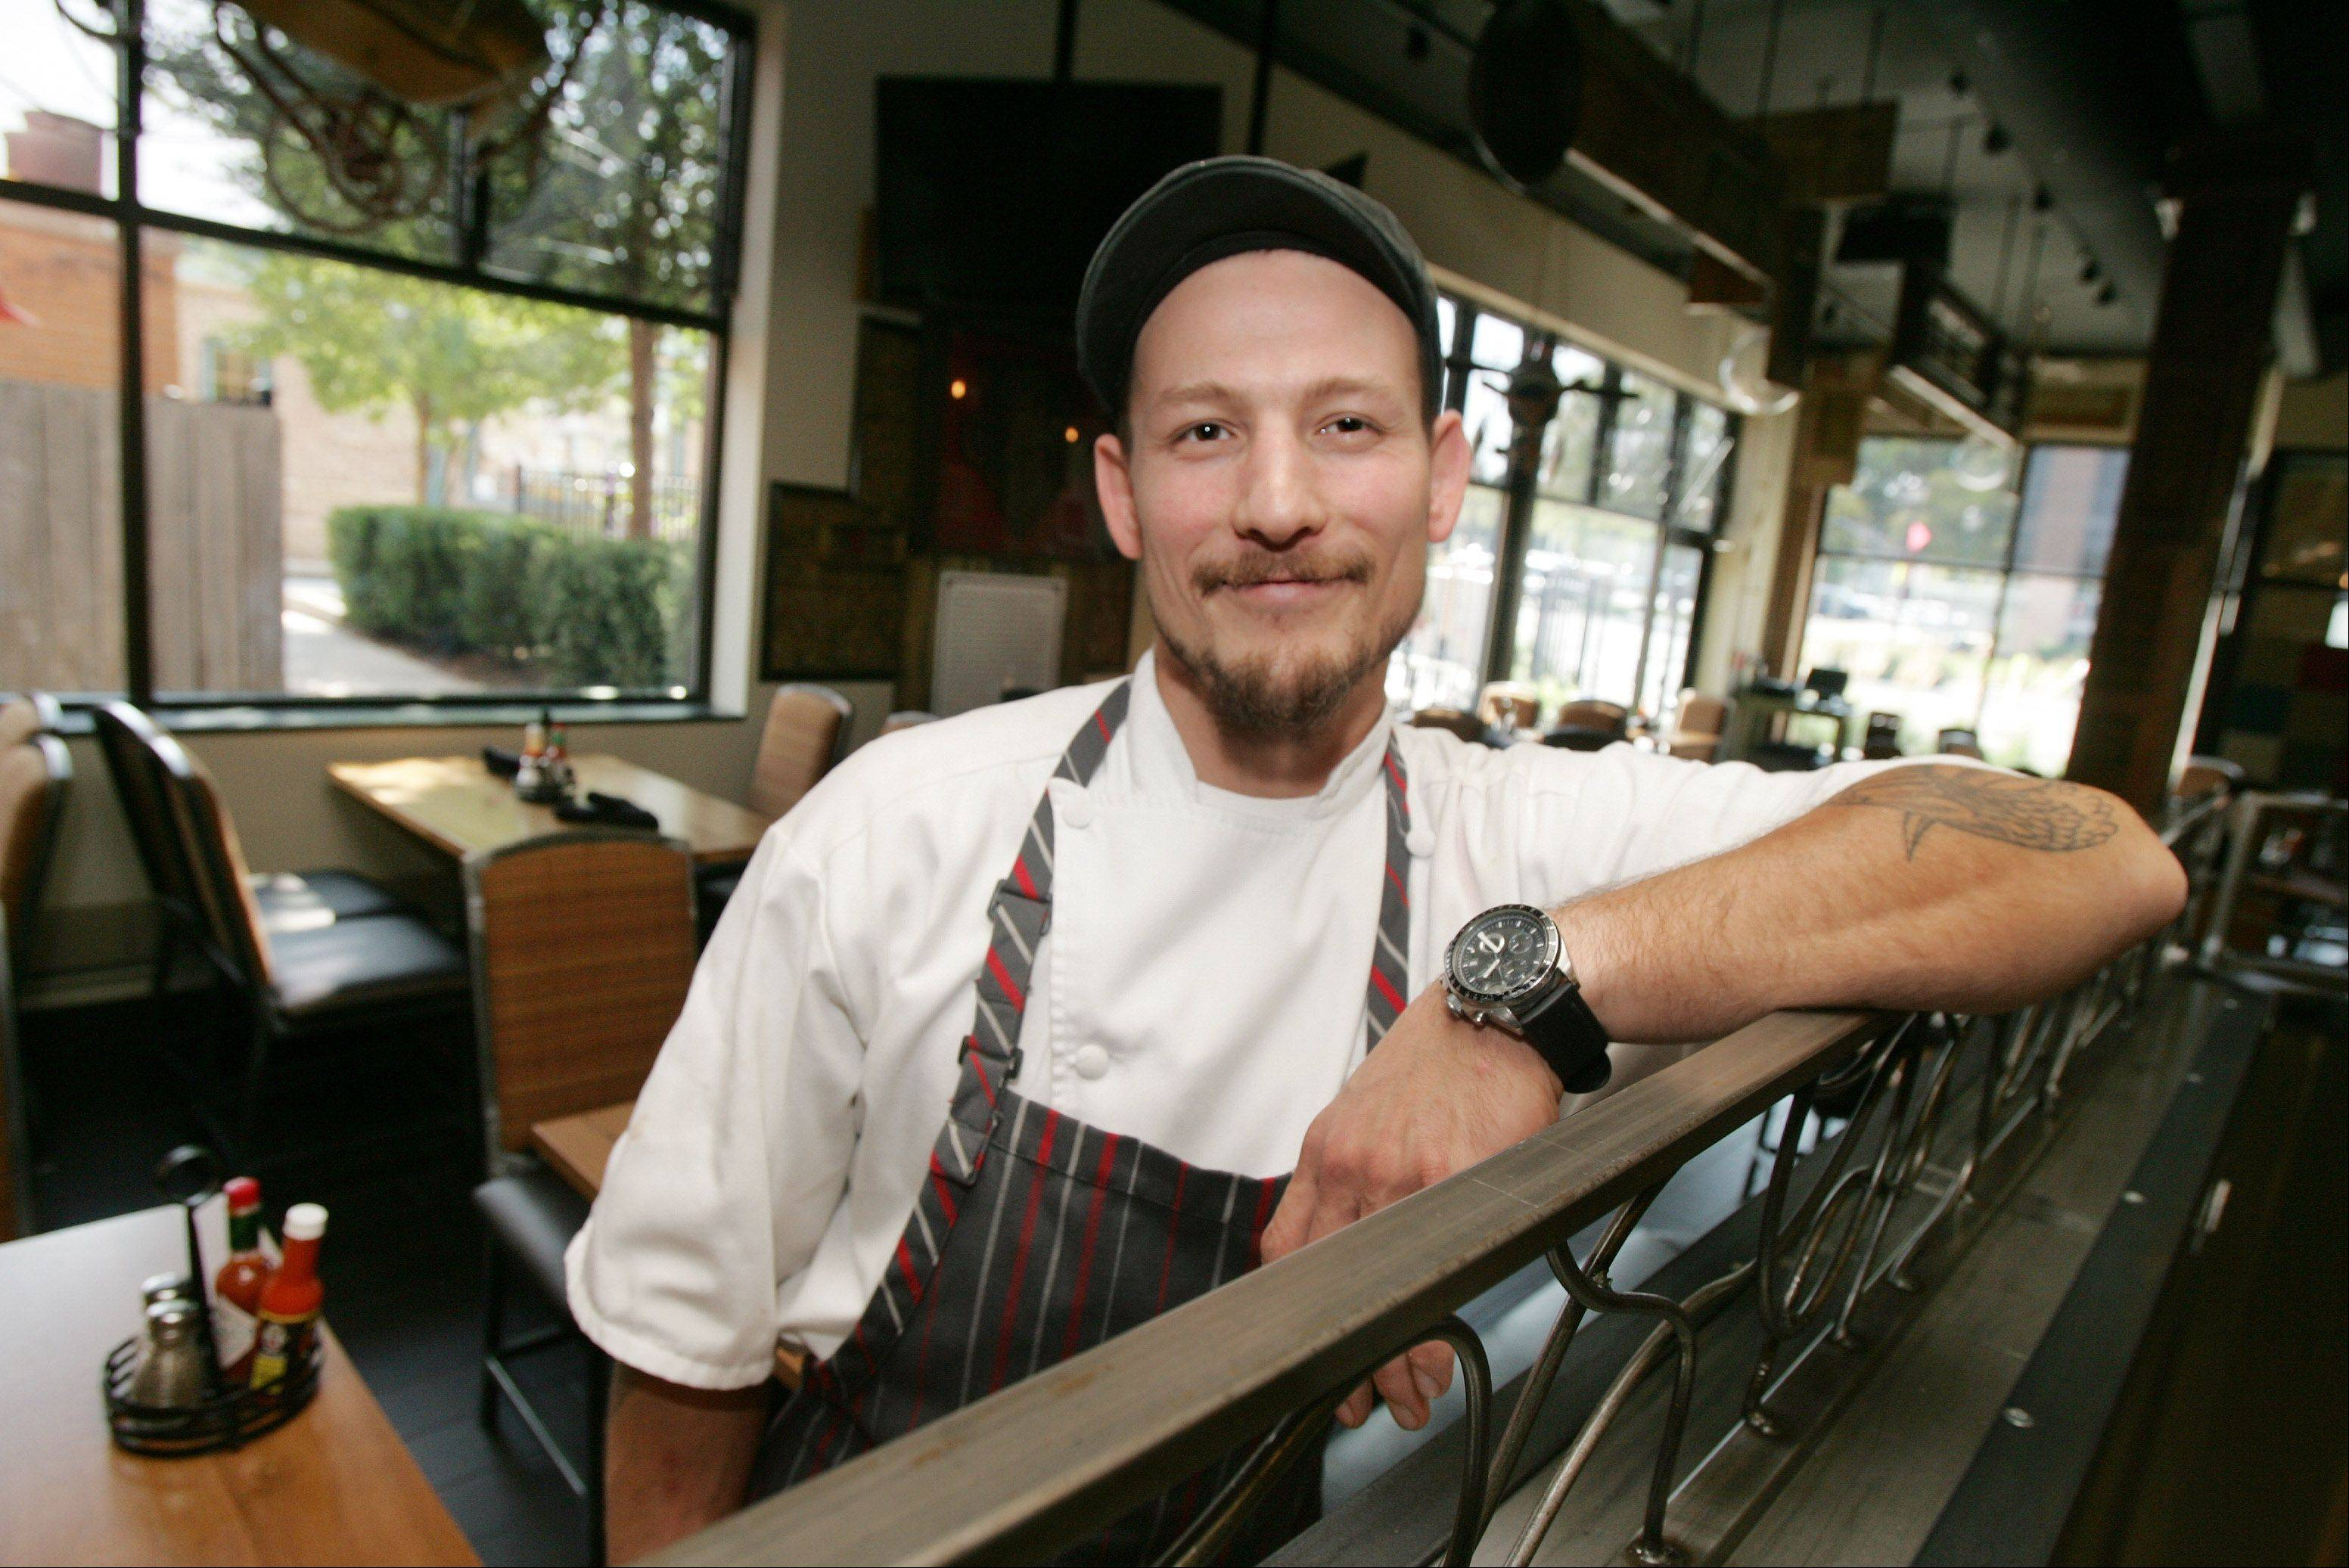 Chef Patrick Hecht helps craft the menu at Chili U in Libertyville.